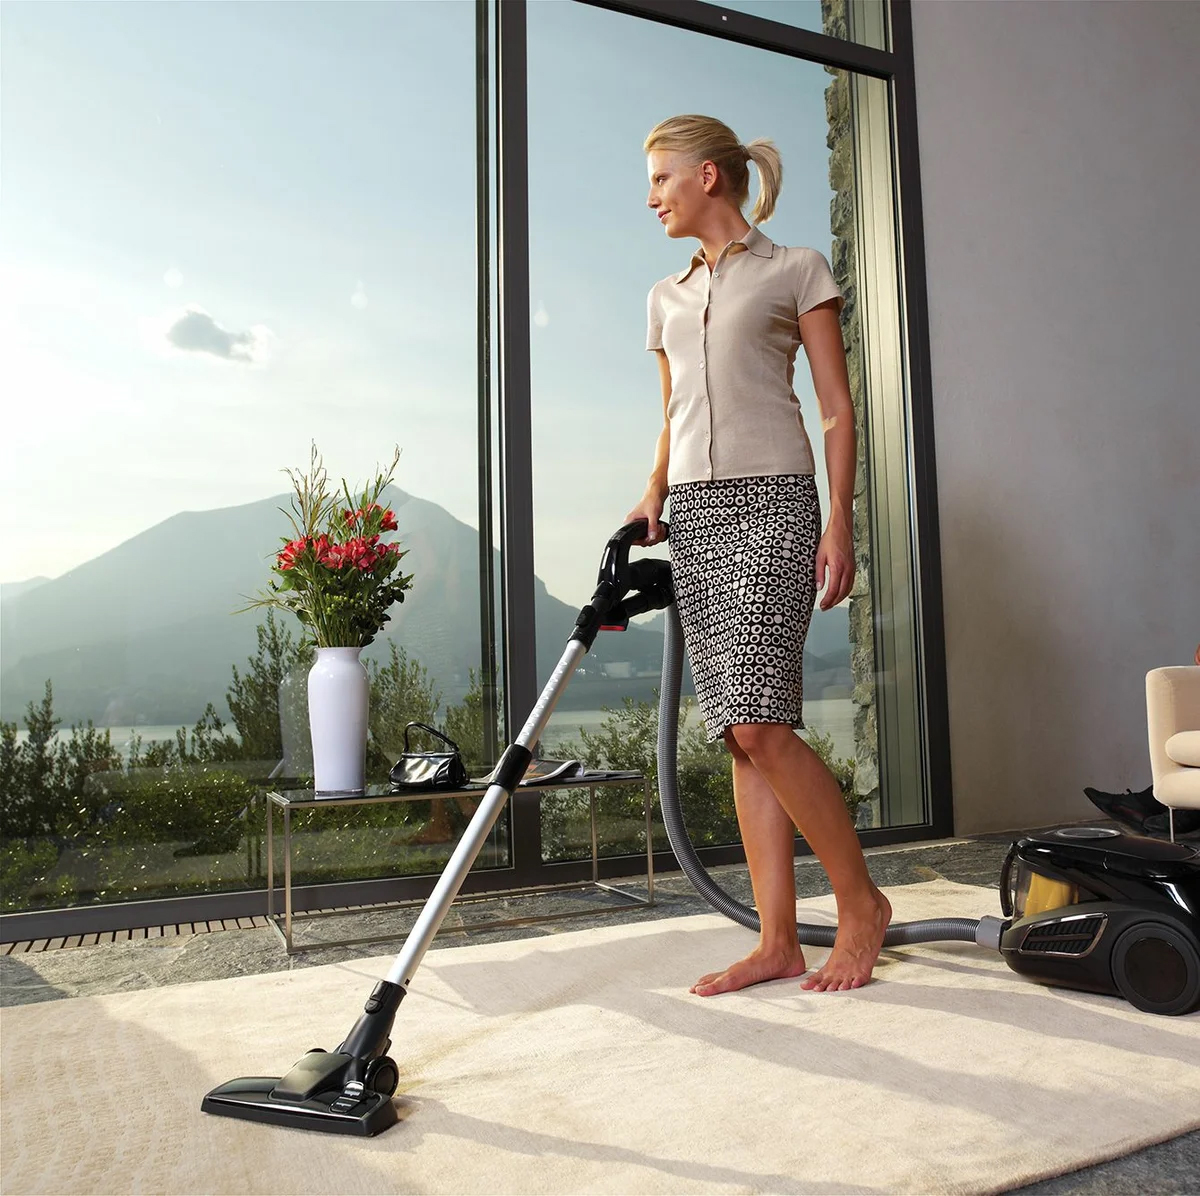 Best Vacuum Cleaner For Carpet Cleaning